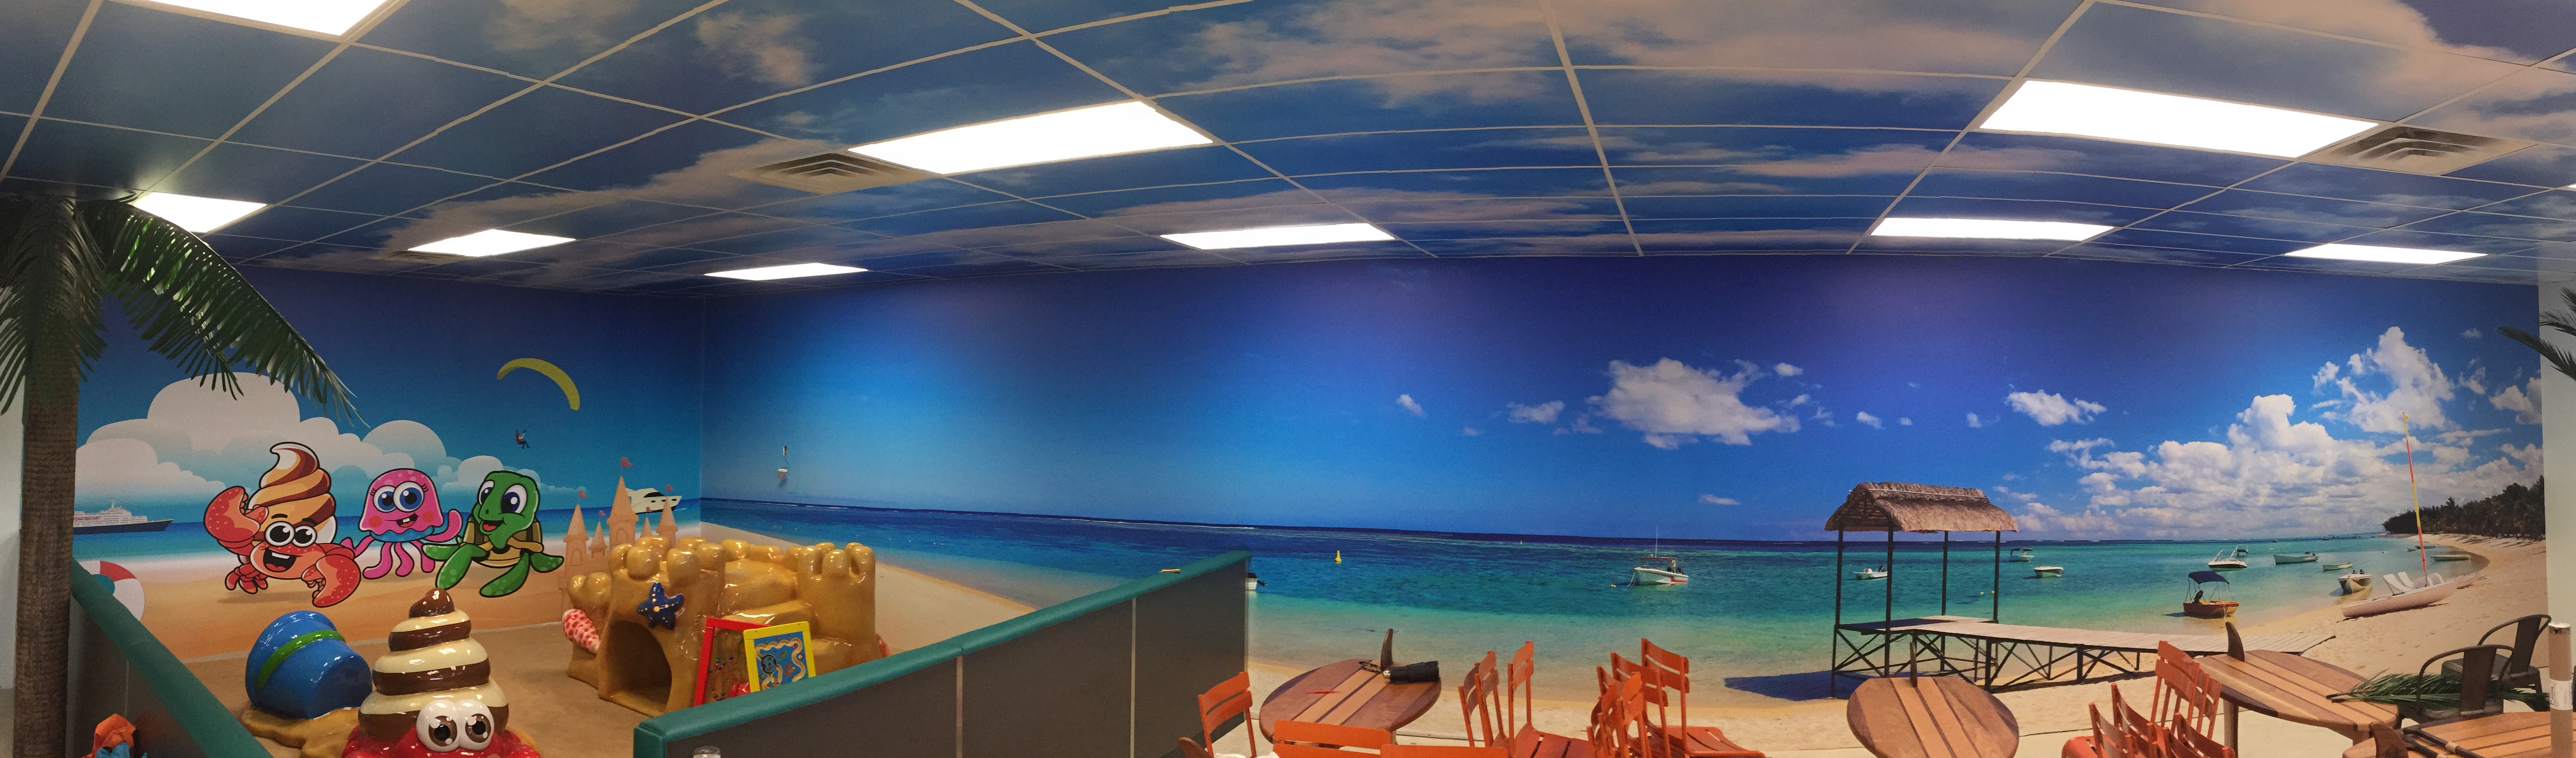 Custom Vinyl Wall Murals for frozen yogurt restaurant in Mason West